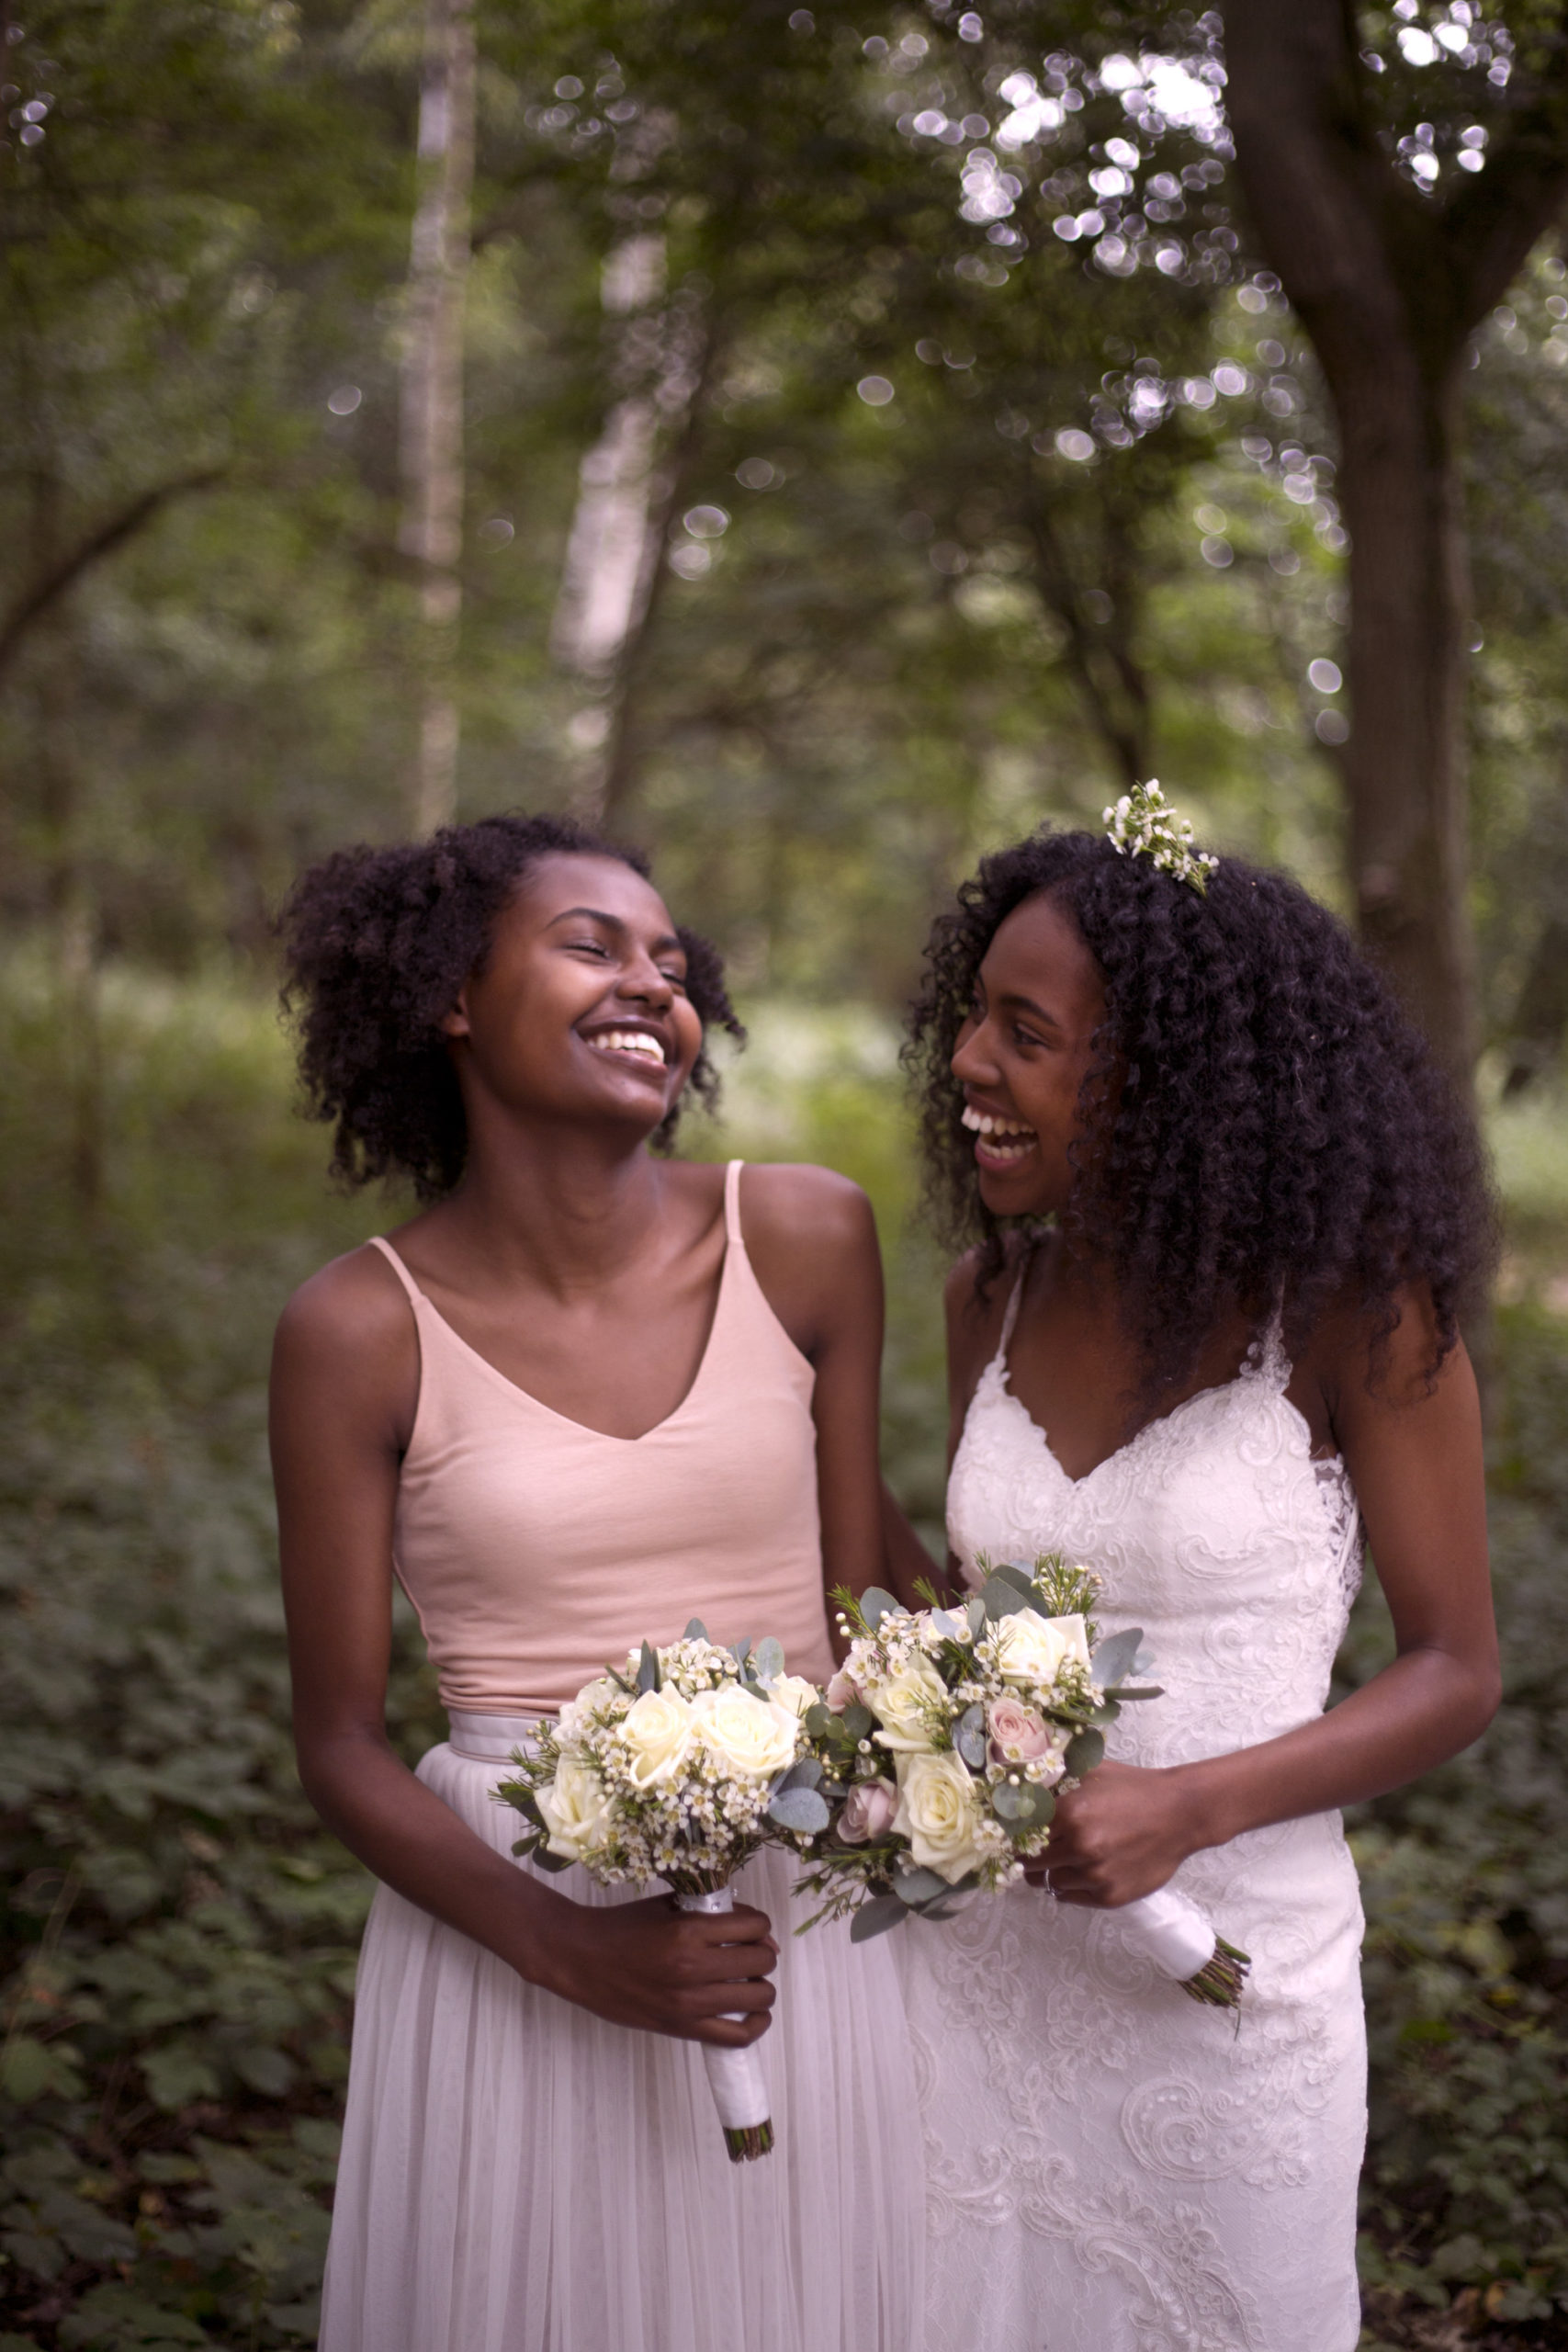 Bride and her bridesmaid laughing during portrait shoot woodland wedding photographer